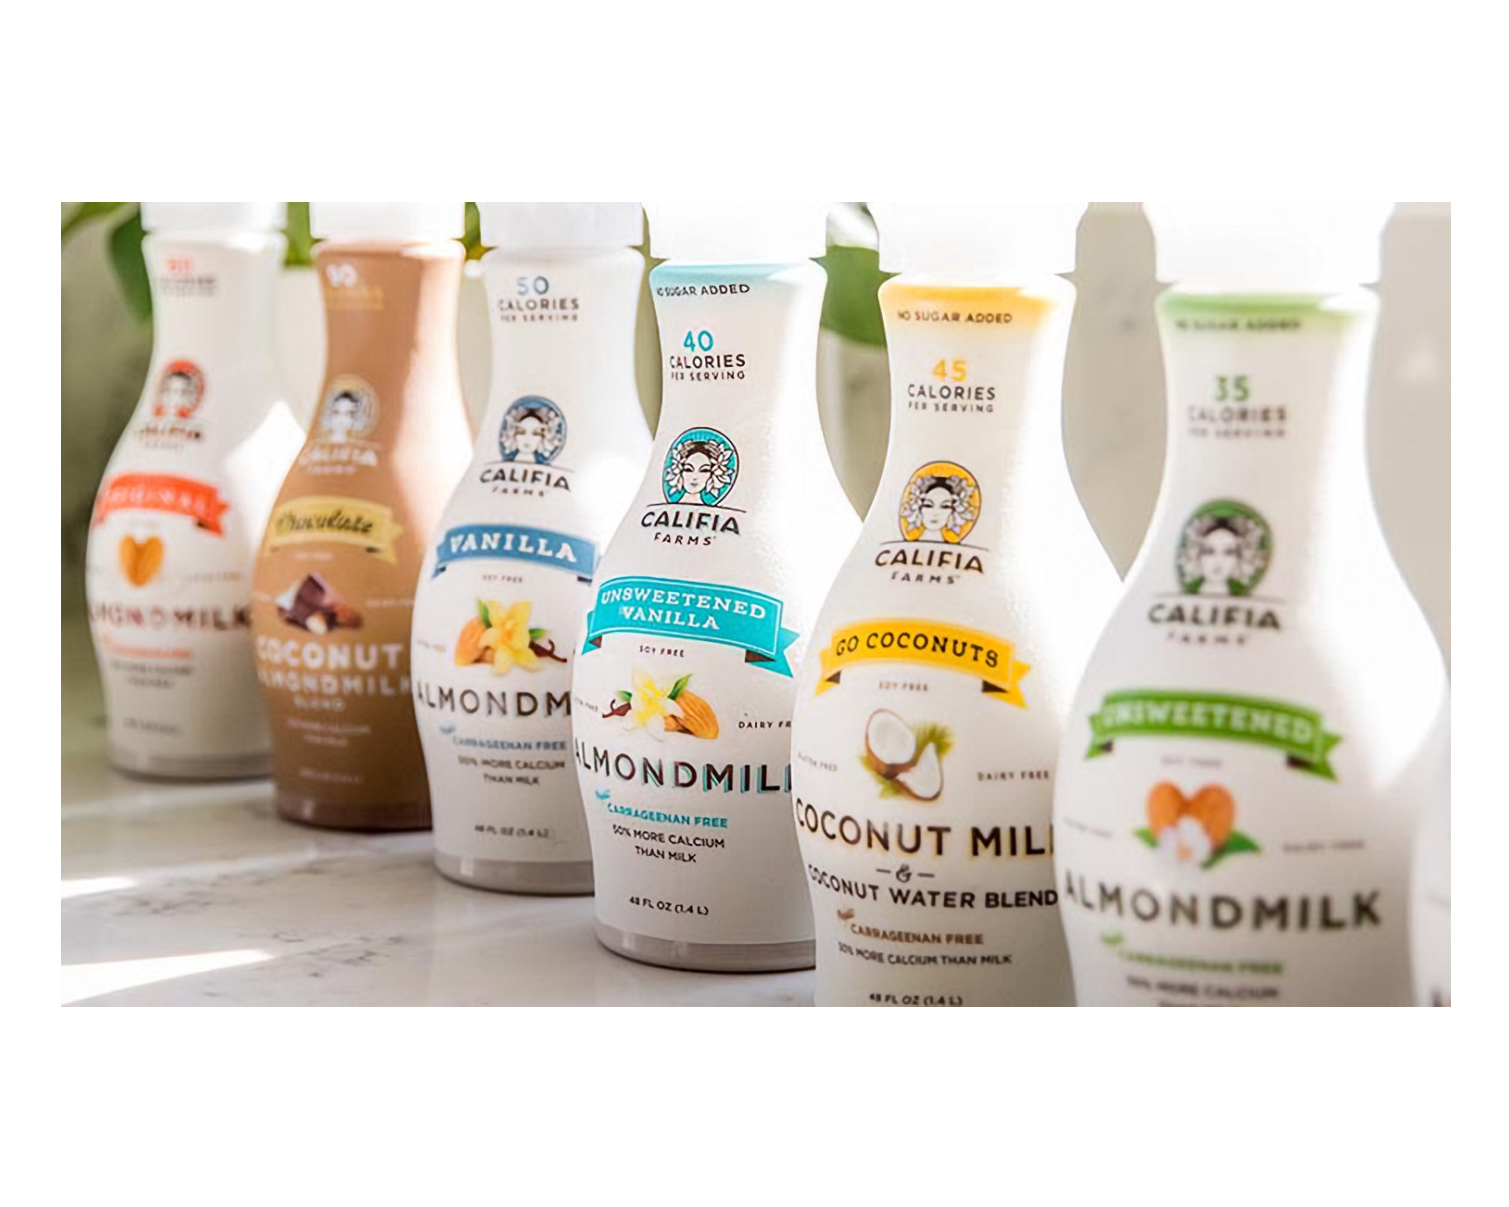 Plant-based milk substitute market gets frothy with $225 million for Califia Farms